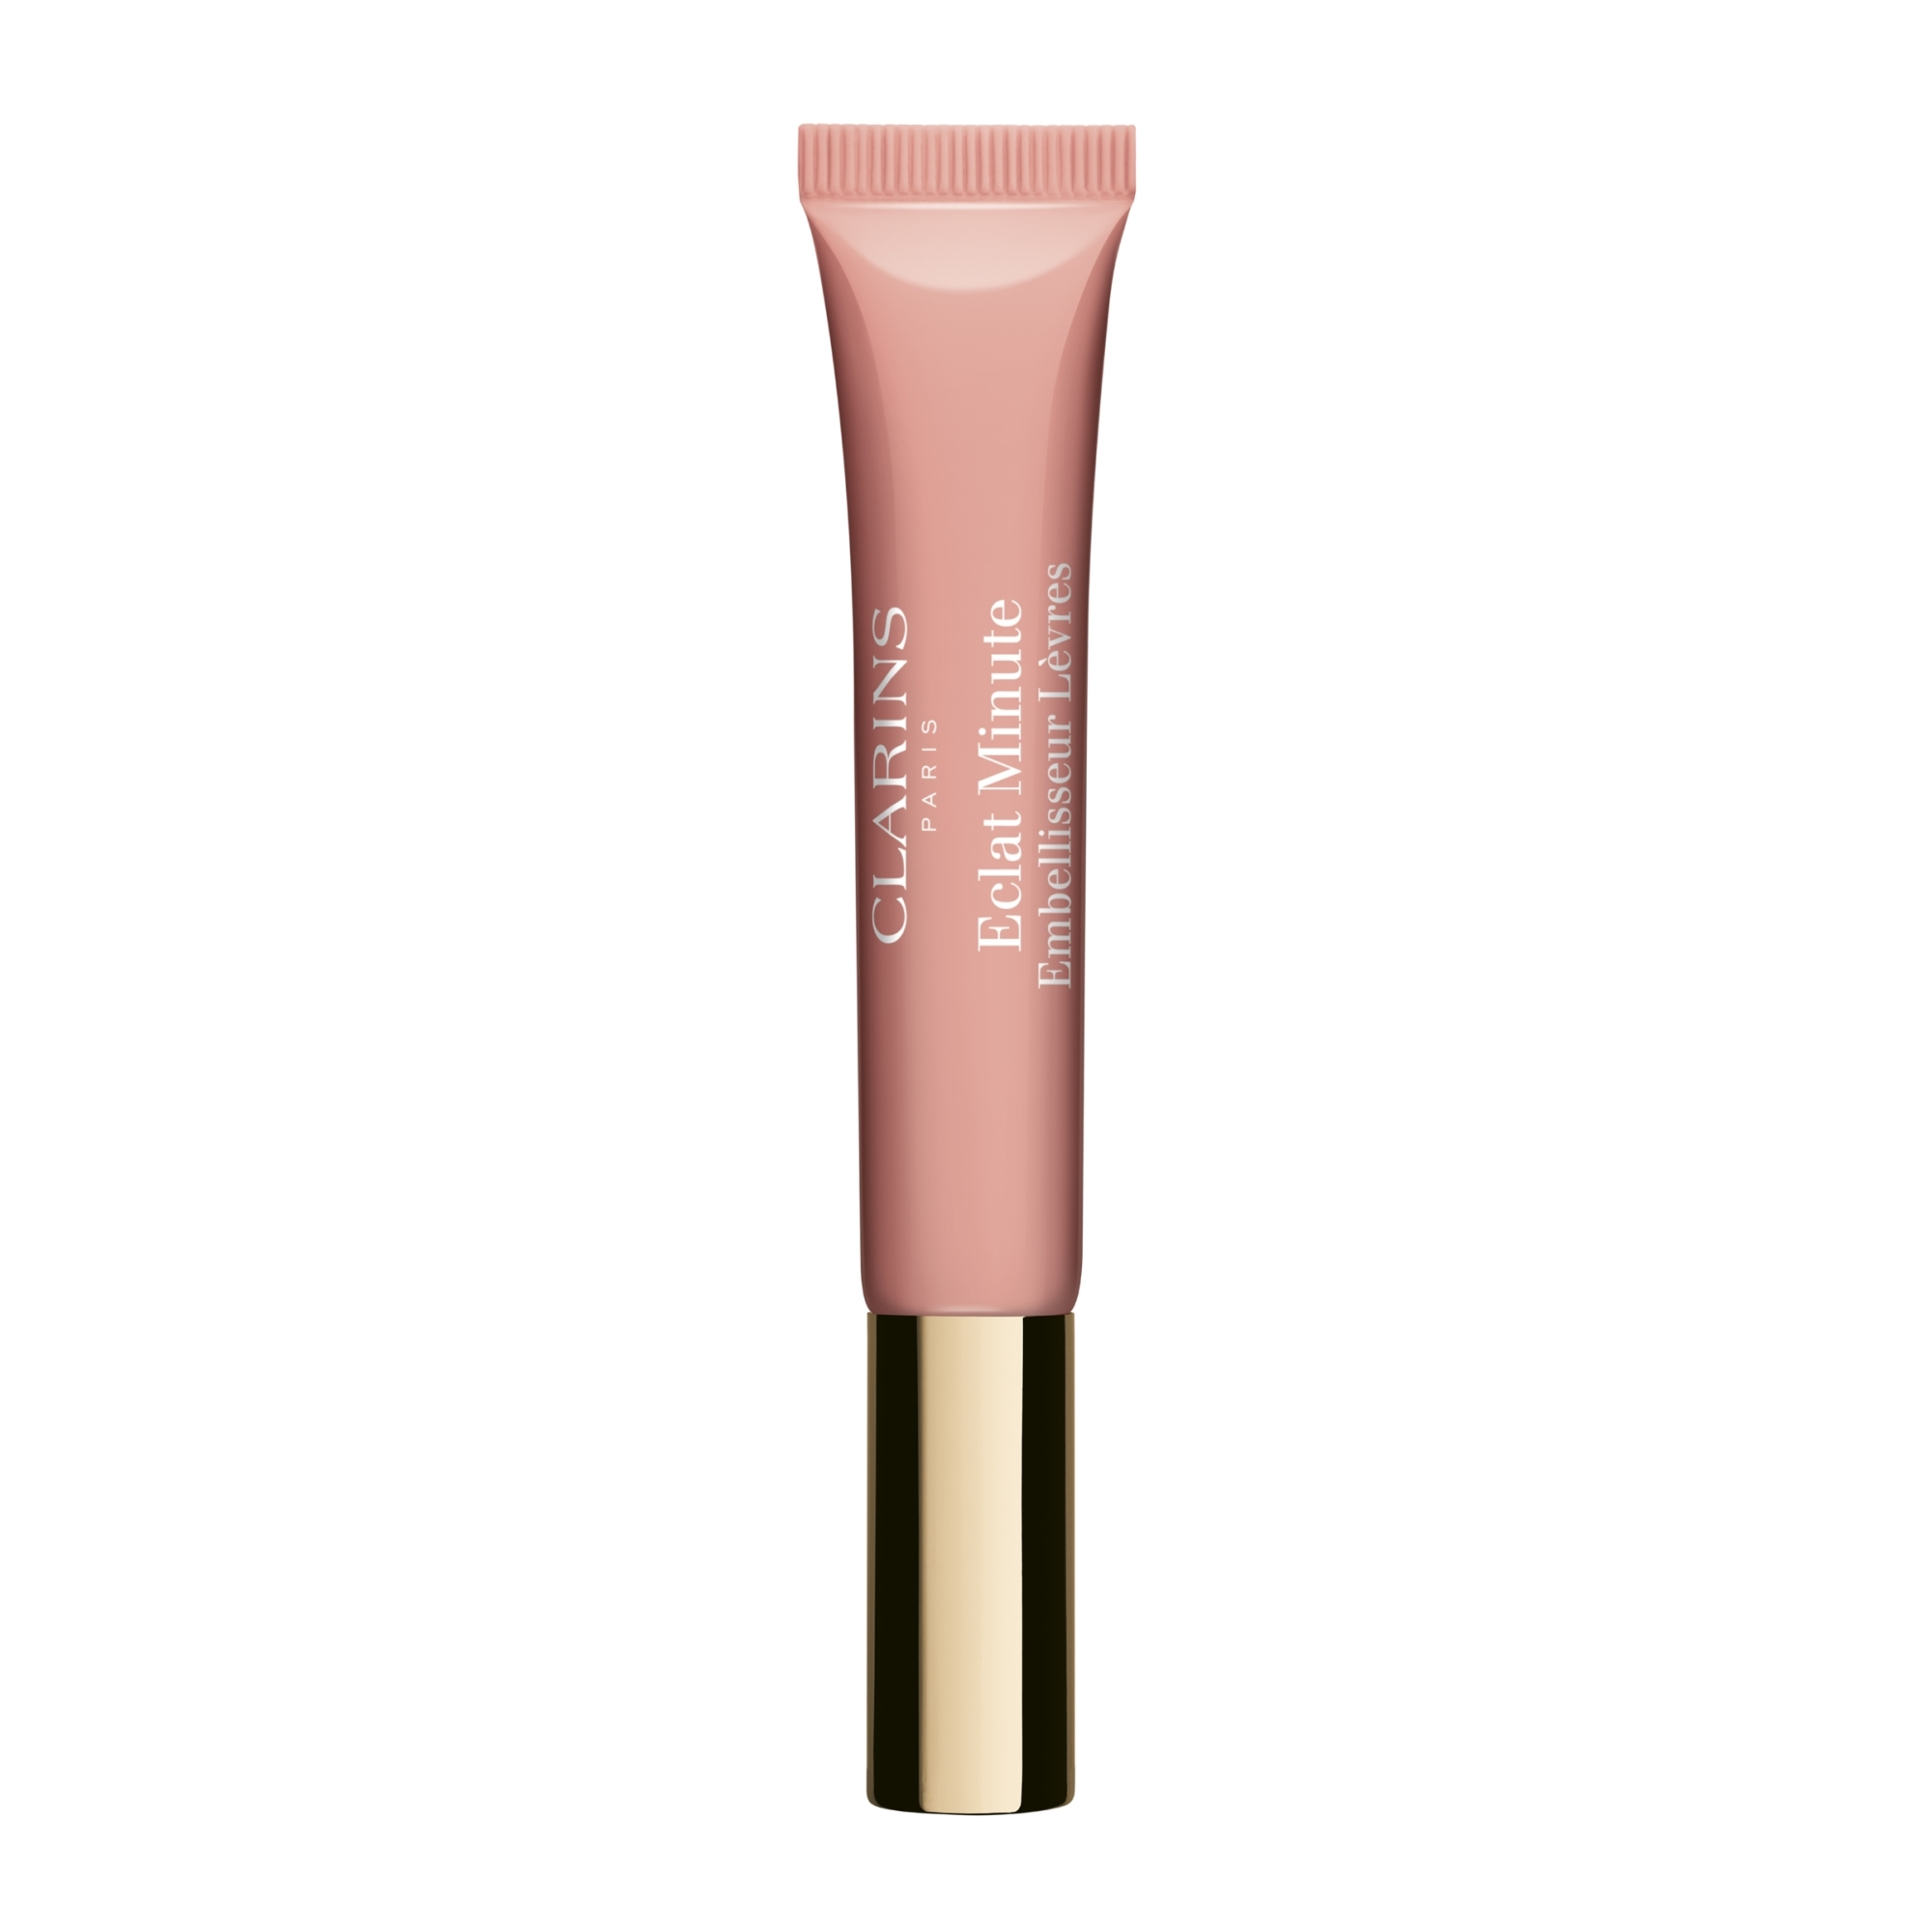 Instant Light Natural Lip Perfector 02 Coral Shimmer